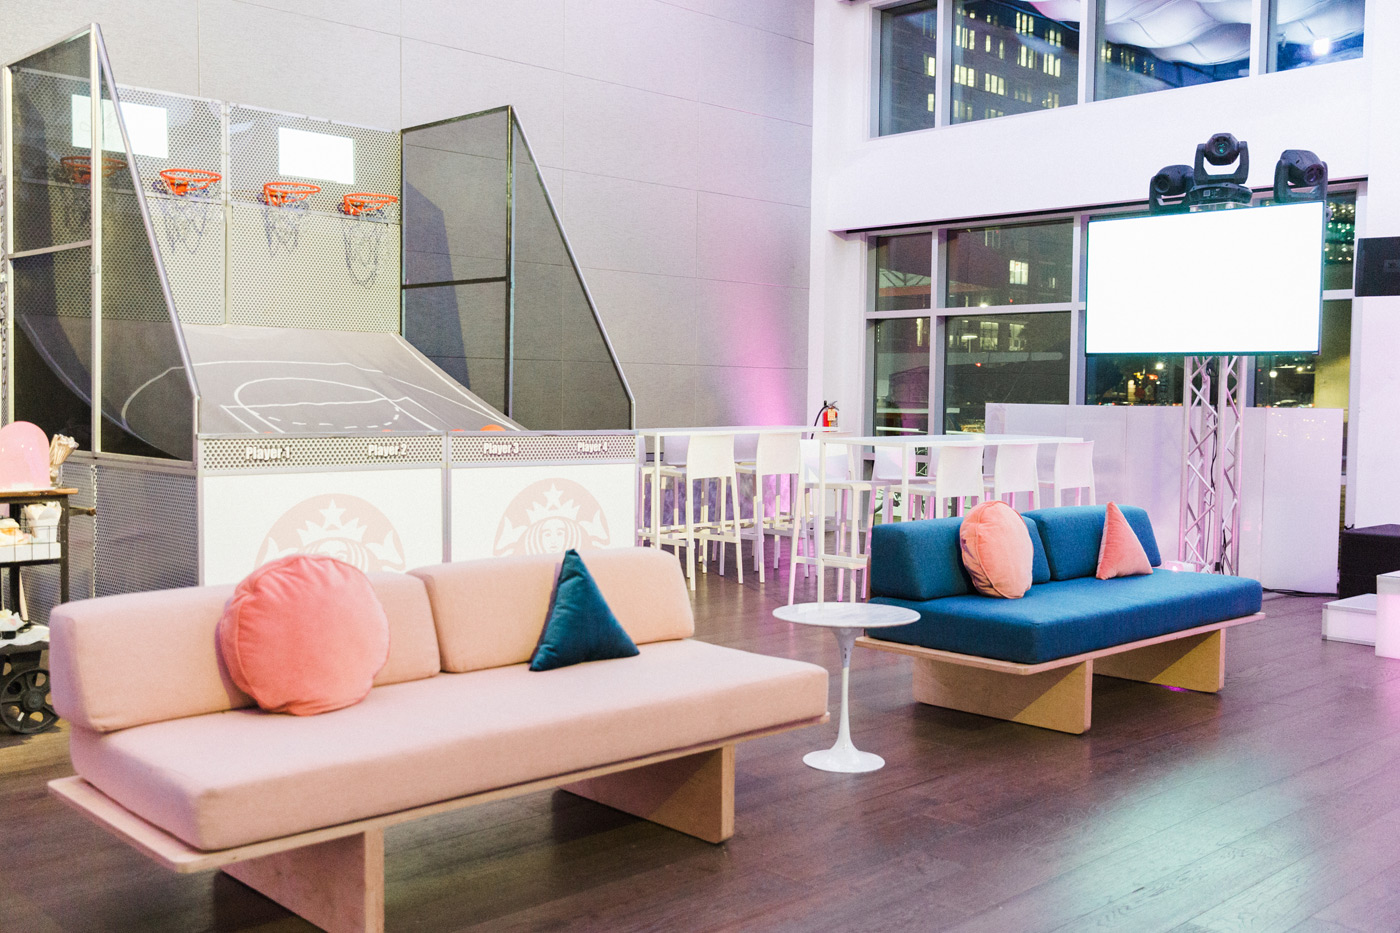 Pastel couches with geometric pillows in front of basketball game.